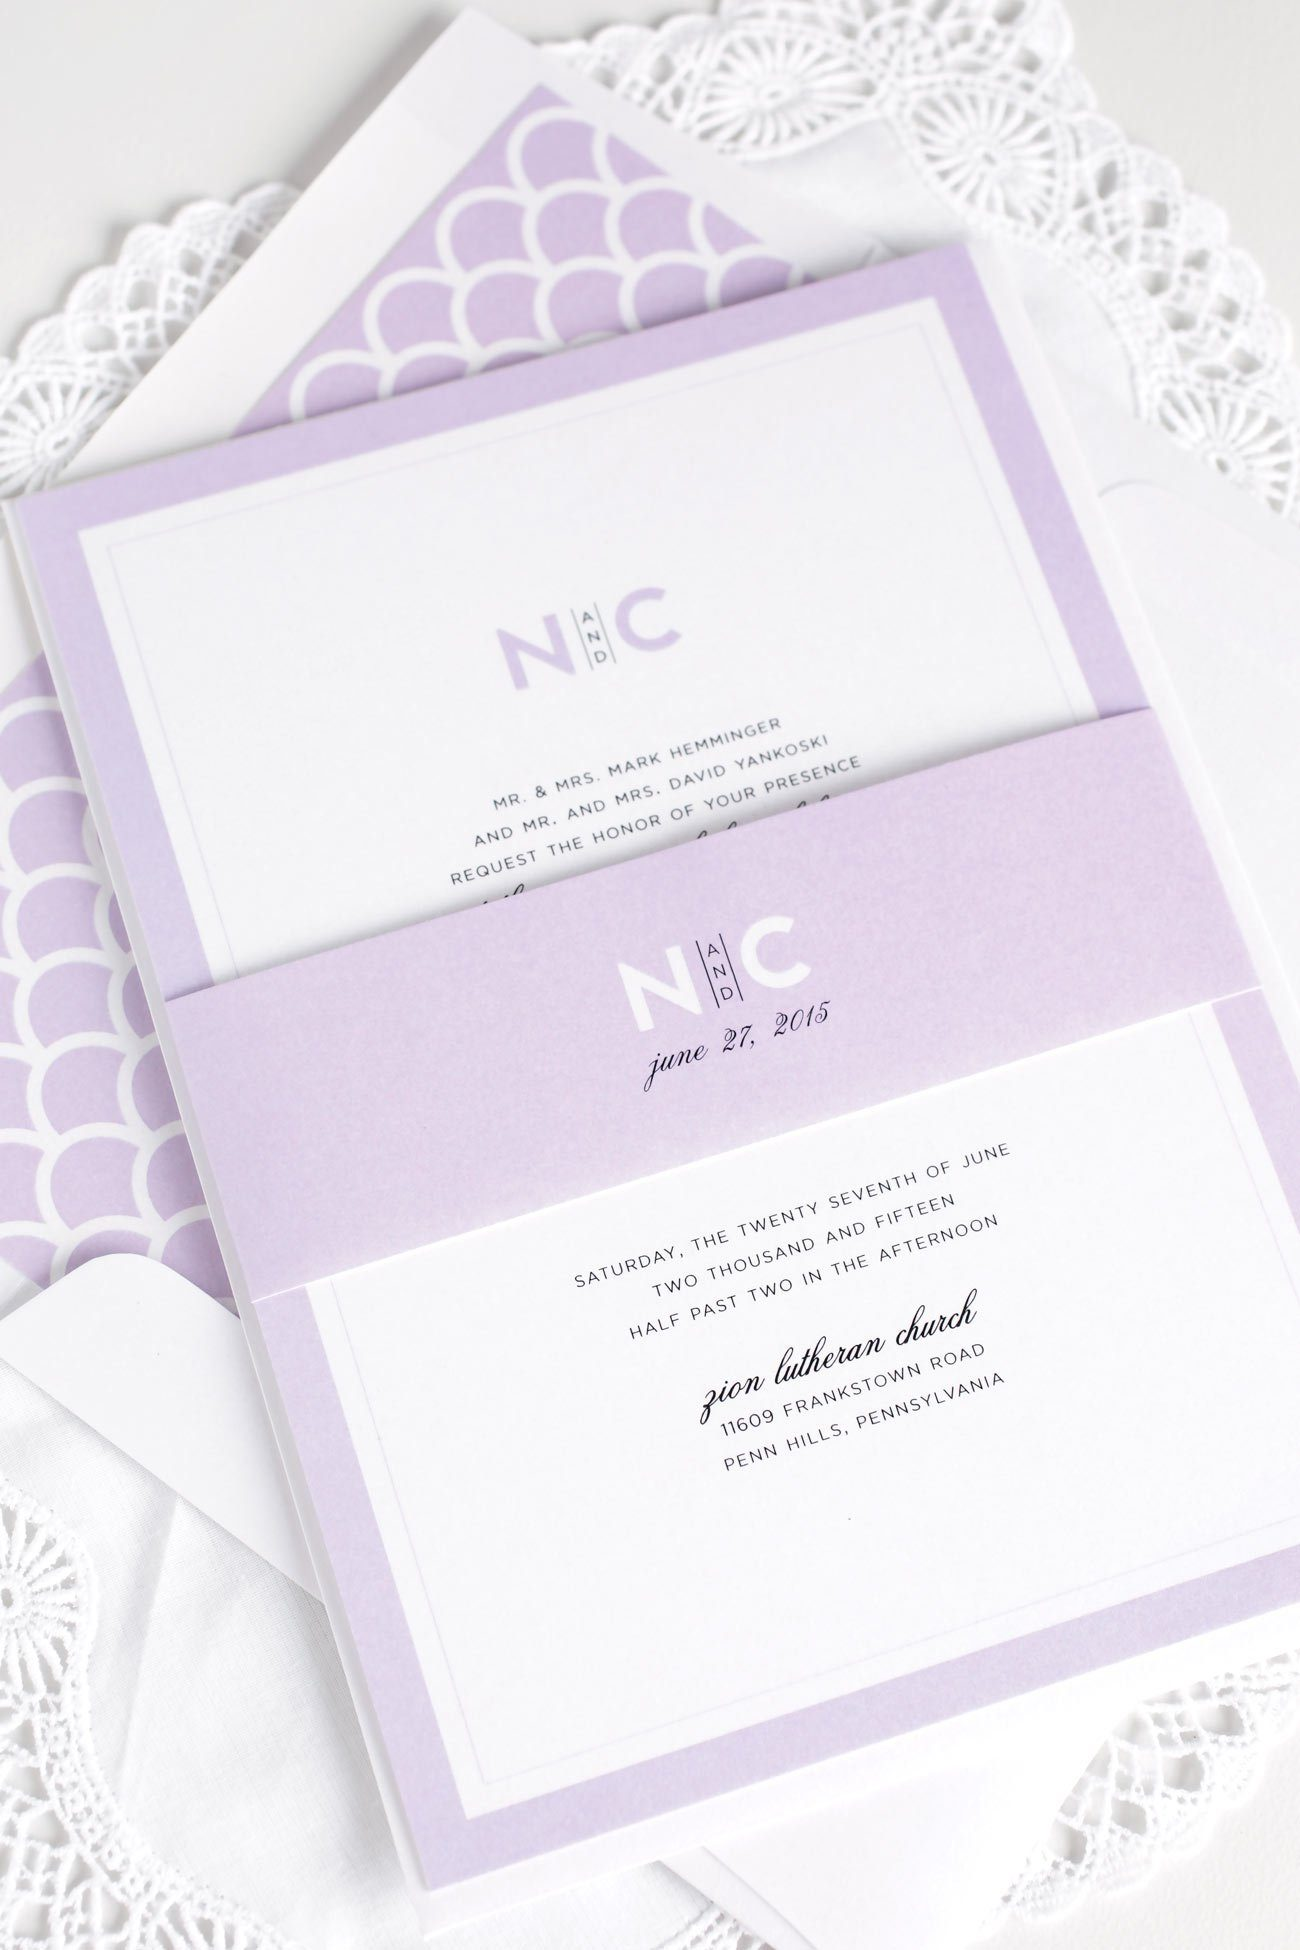 Modern wedding invitations in purple with scallop accents